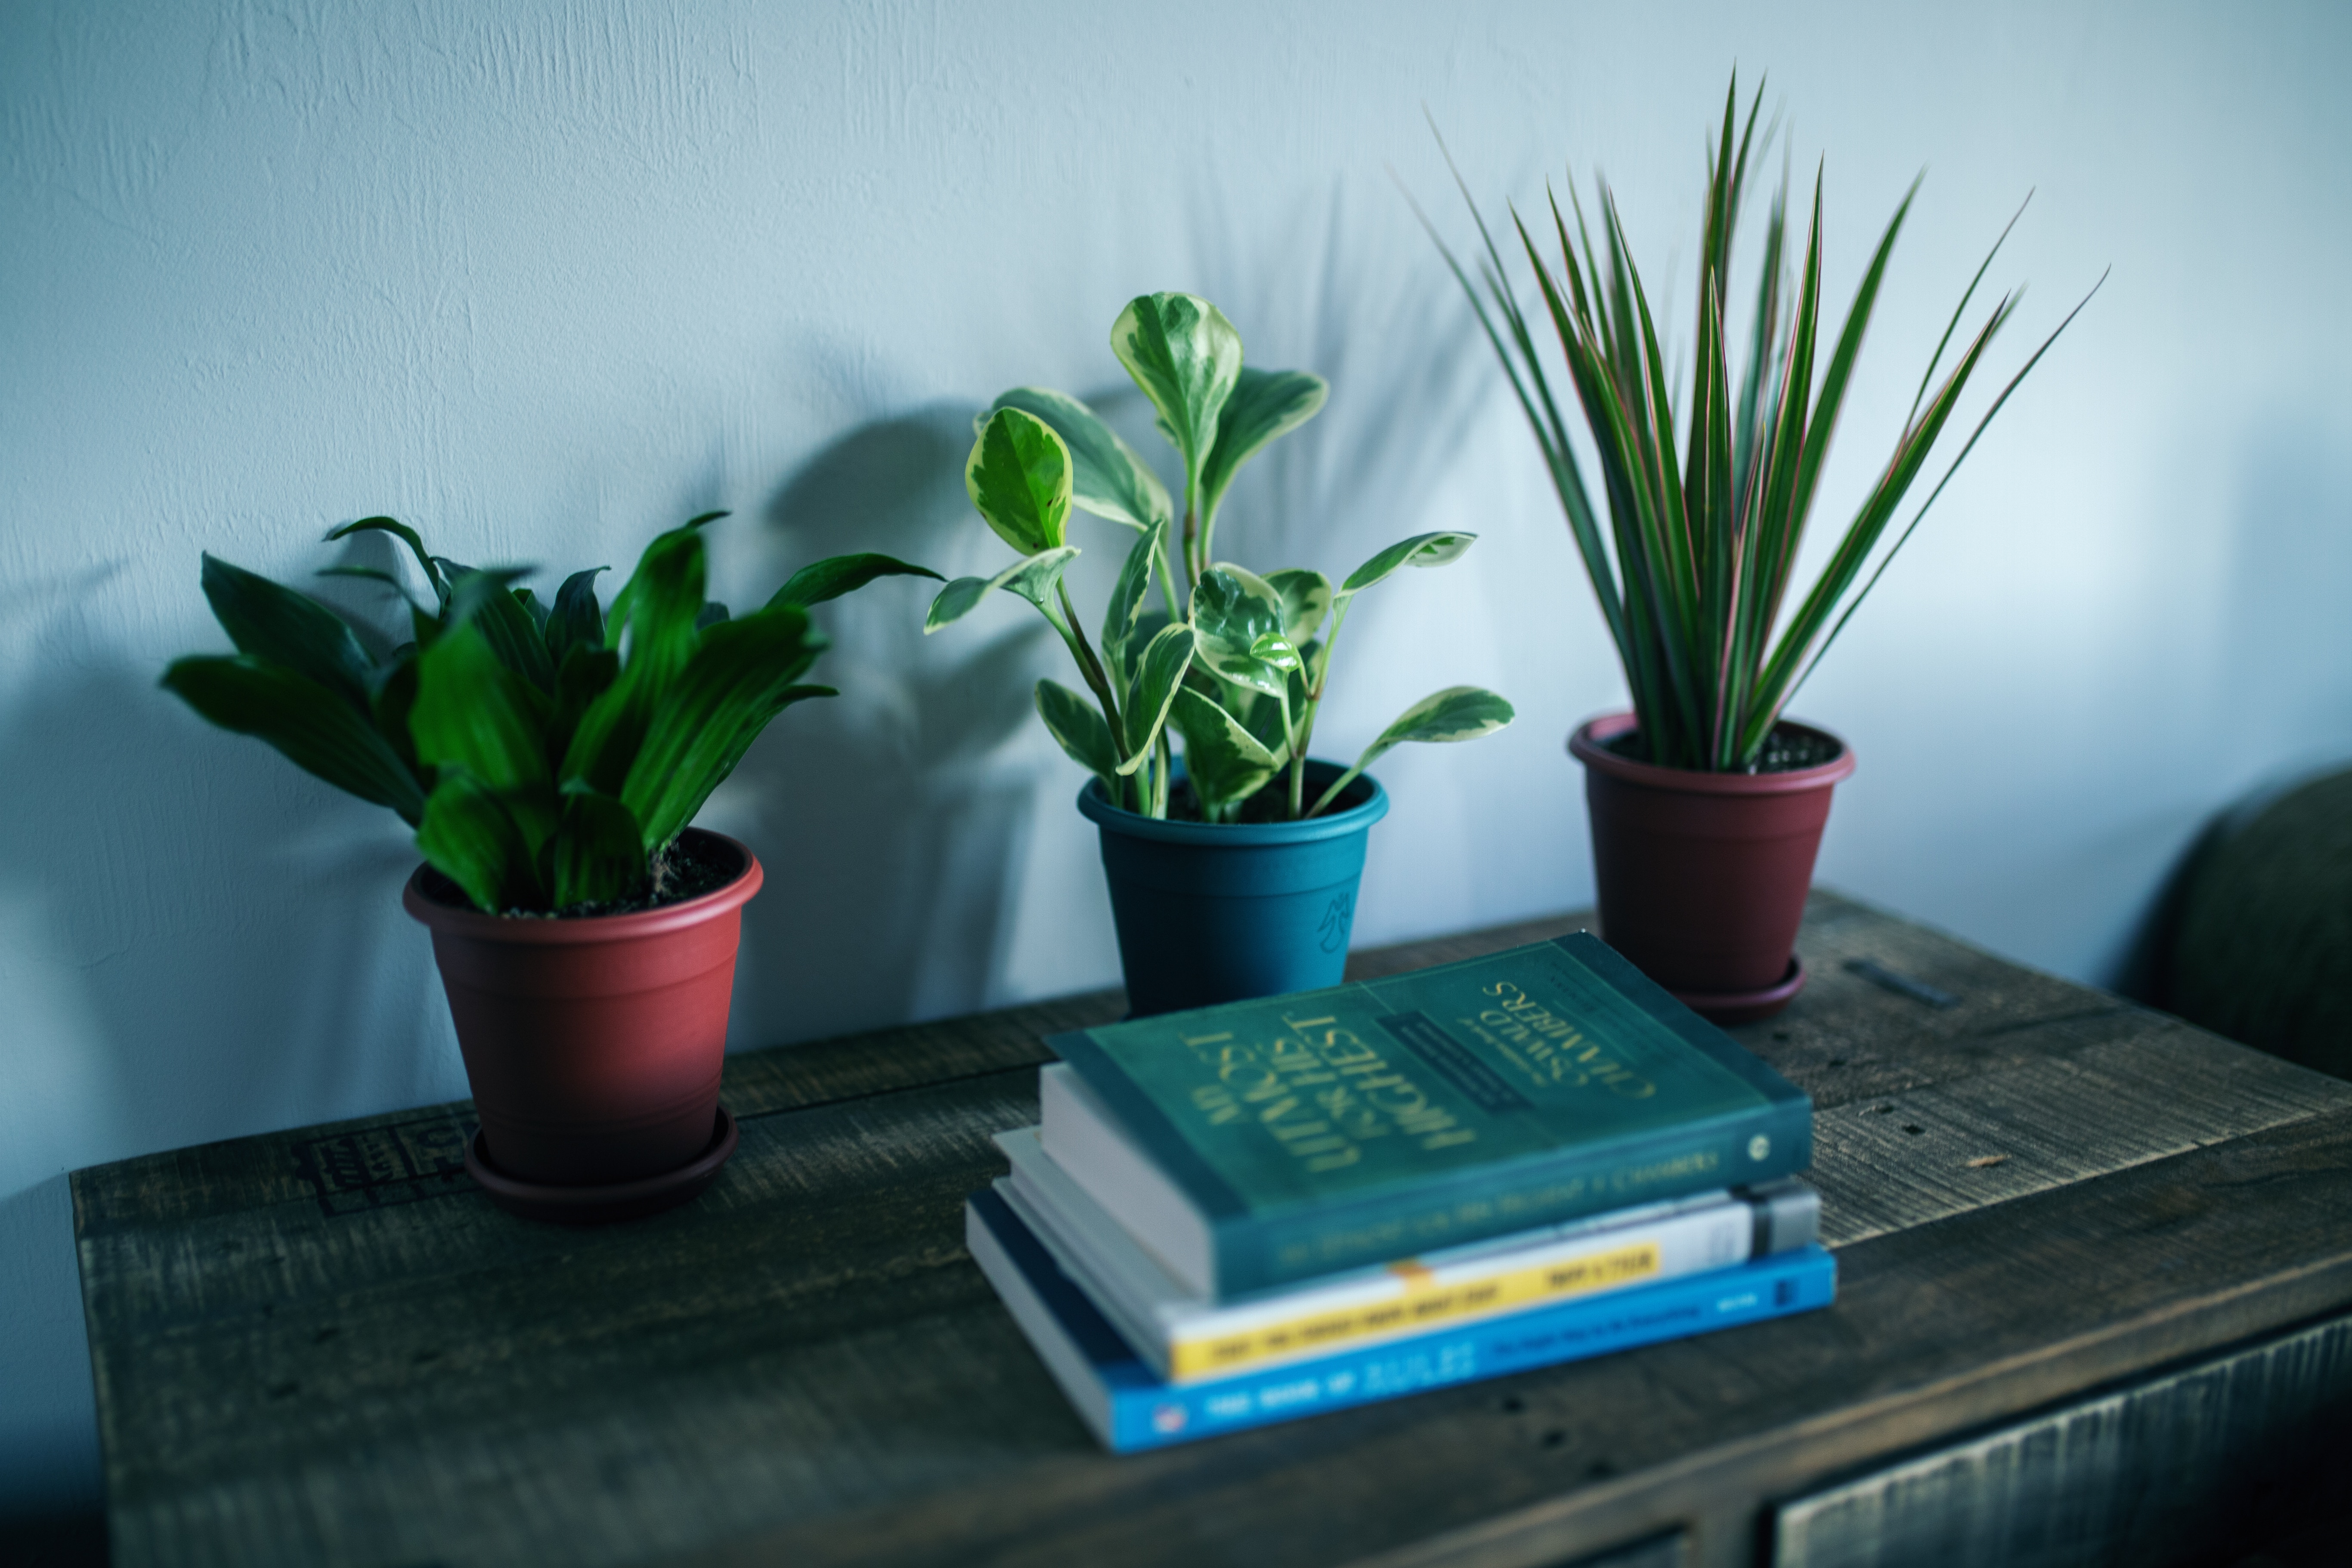 table with plants and books